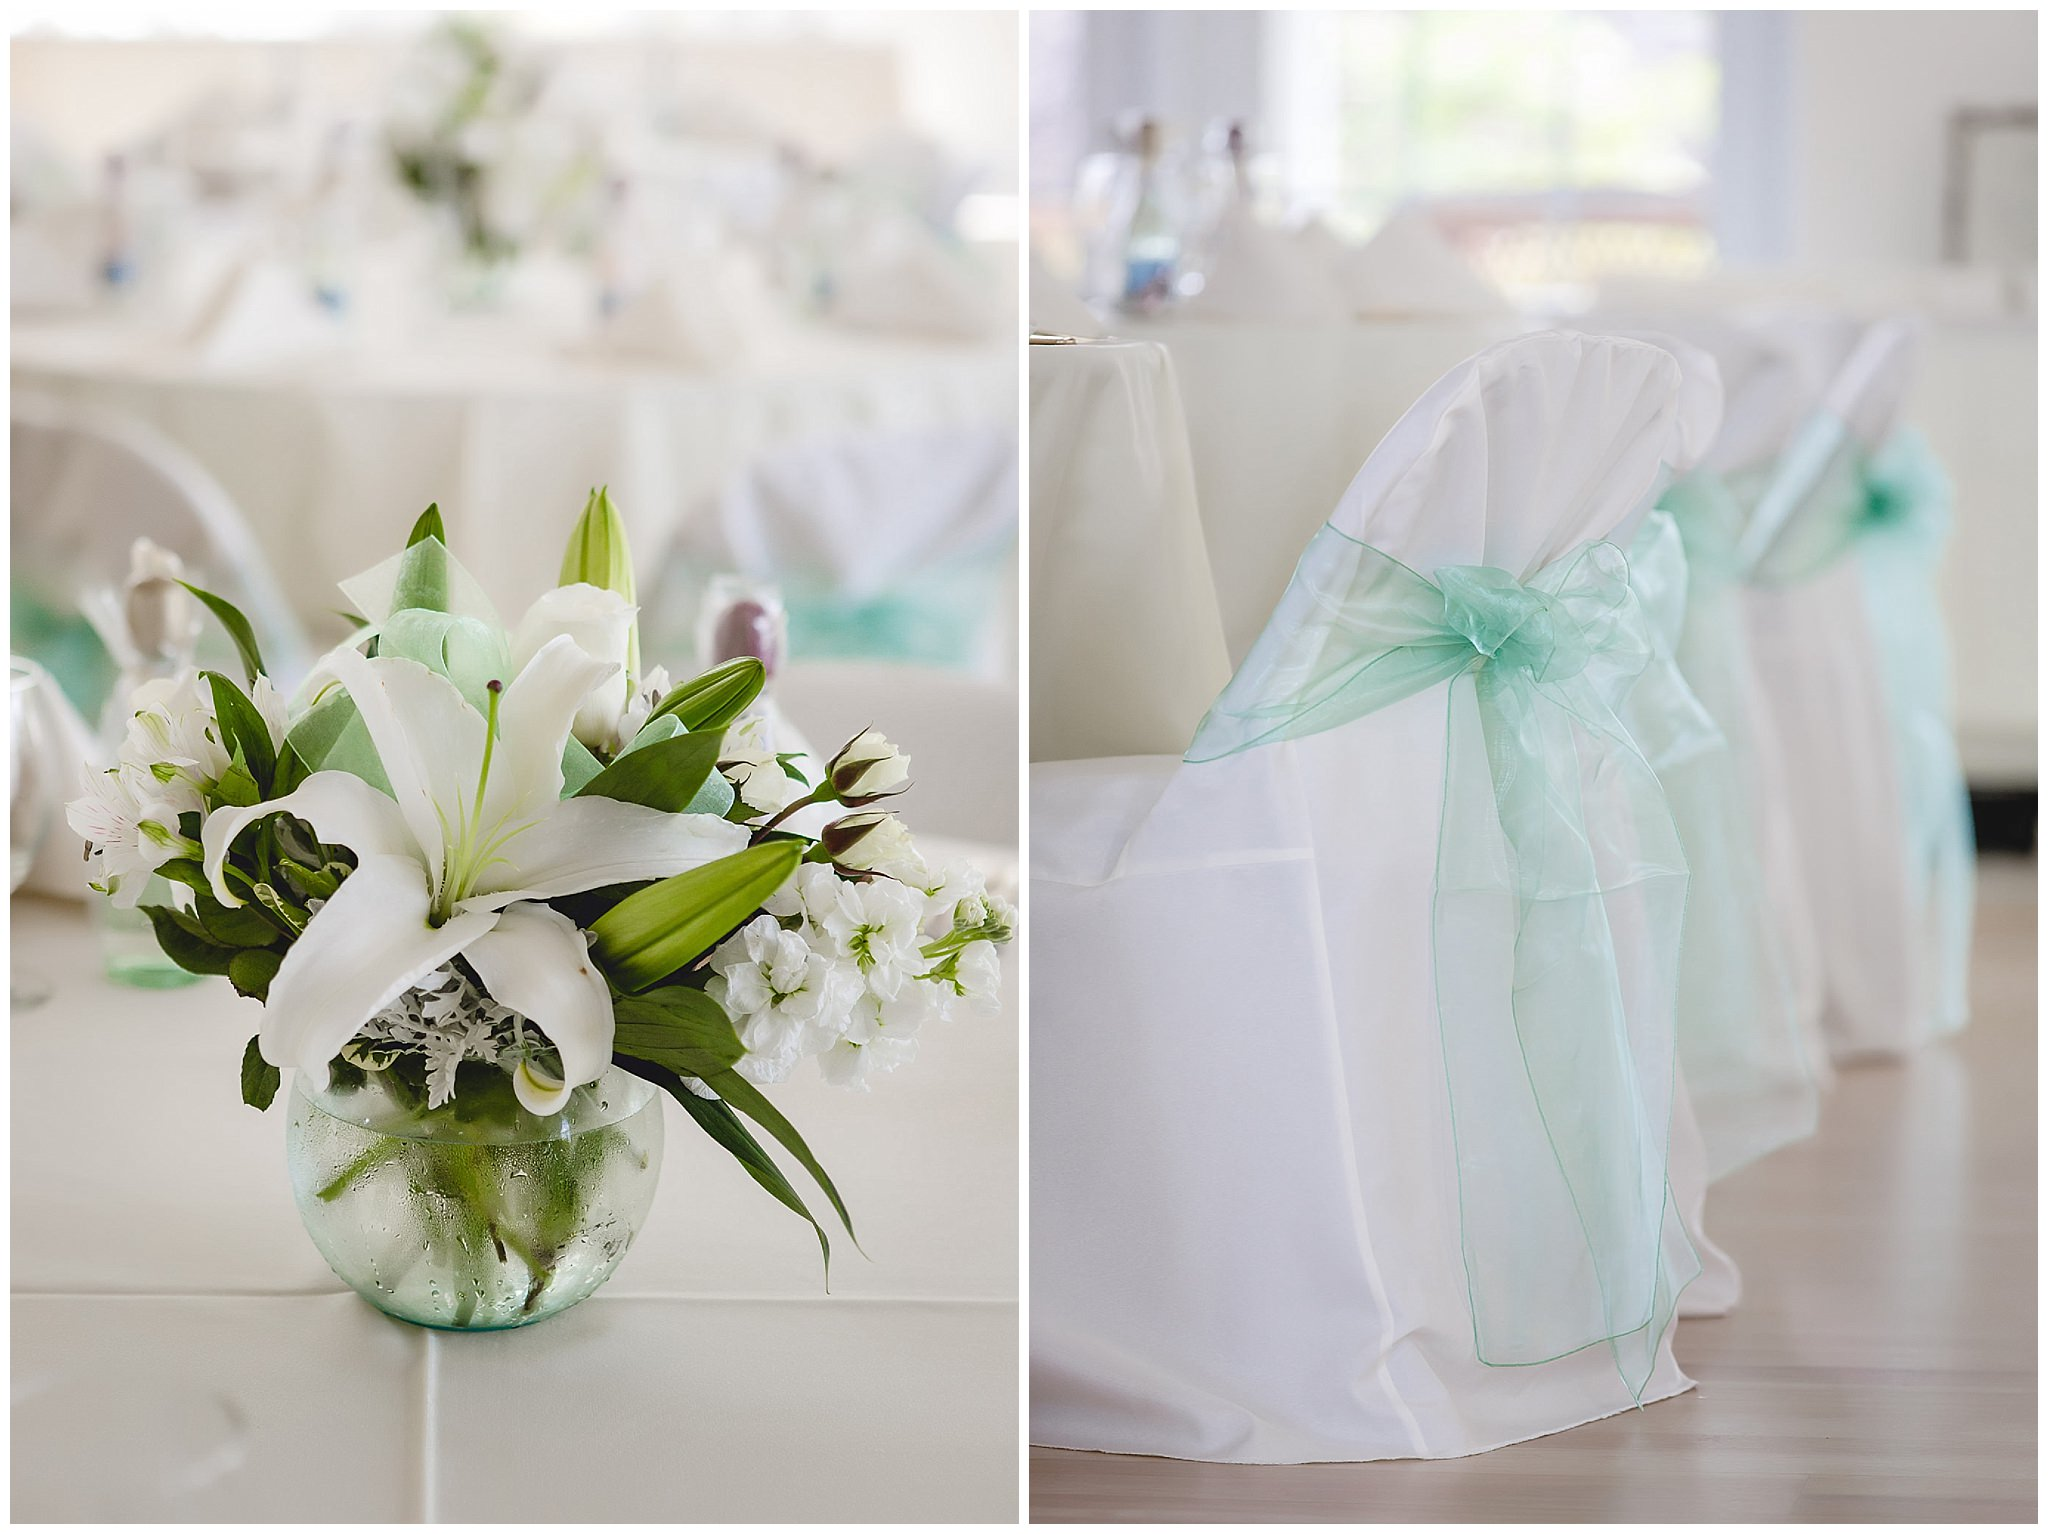 Floral centerpiece and chair covers with mint accent bows at Greystone Fields